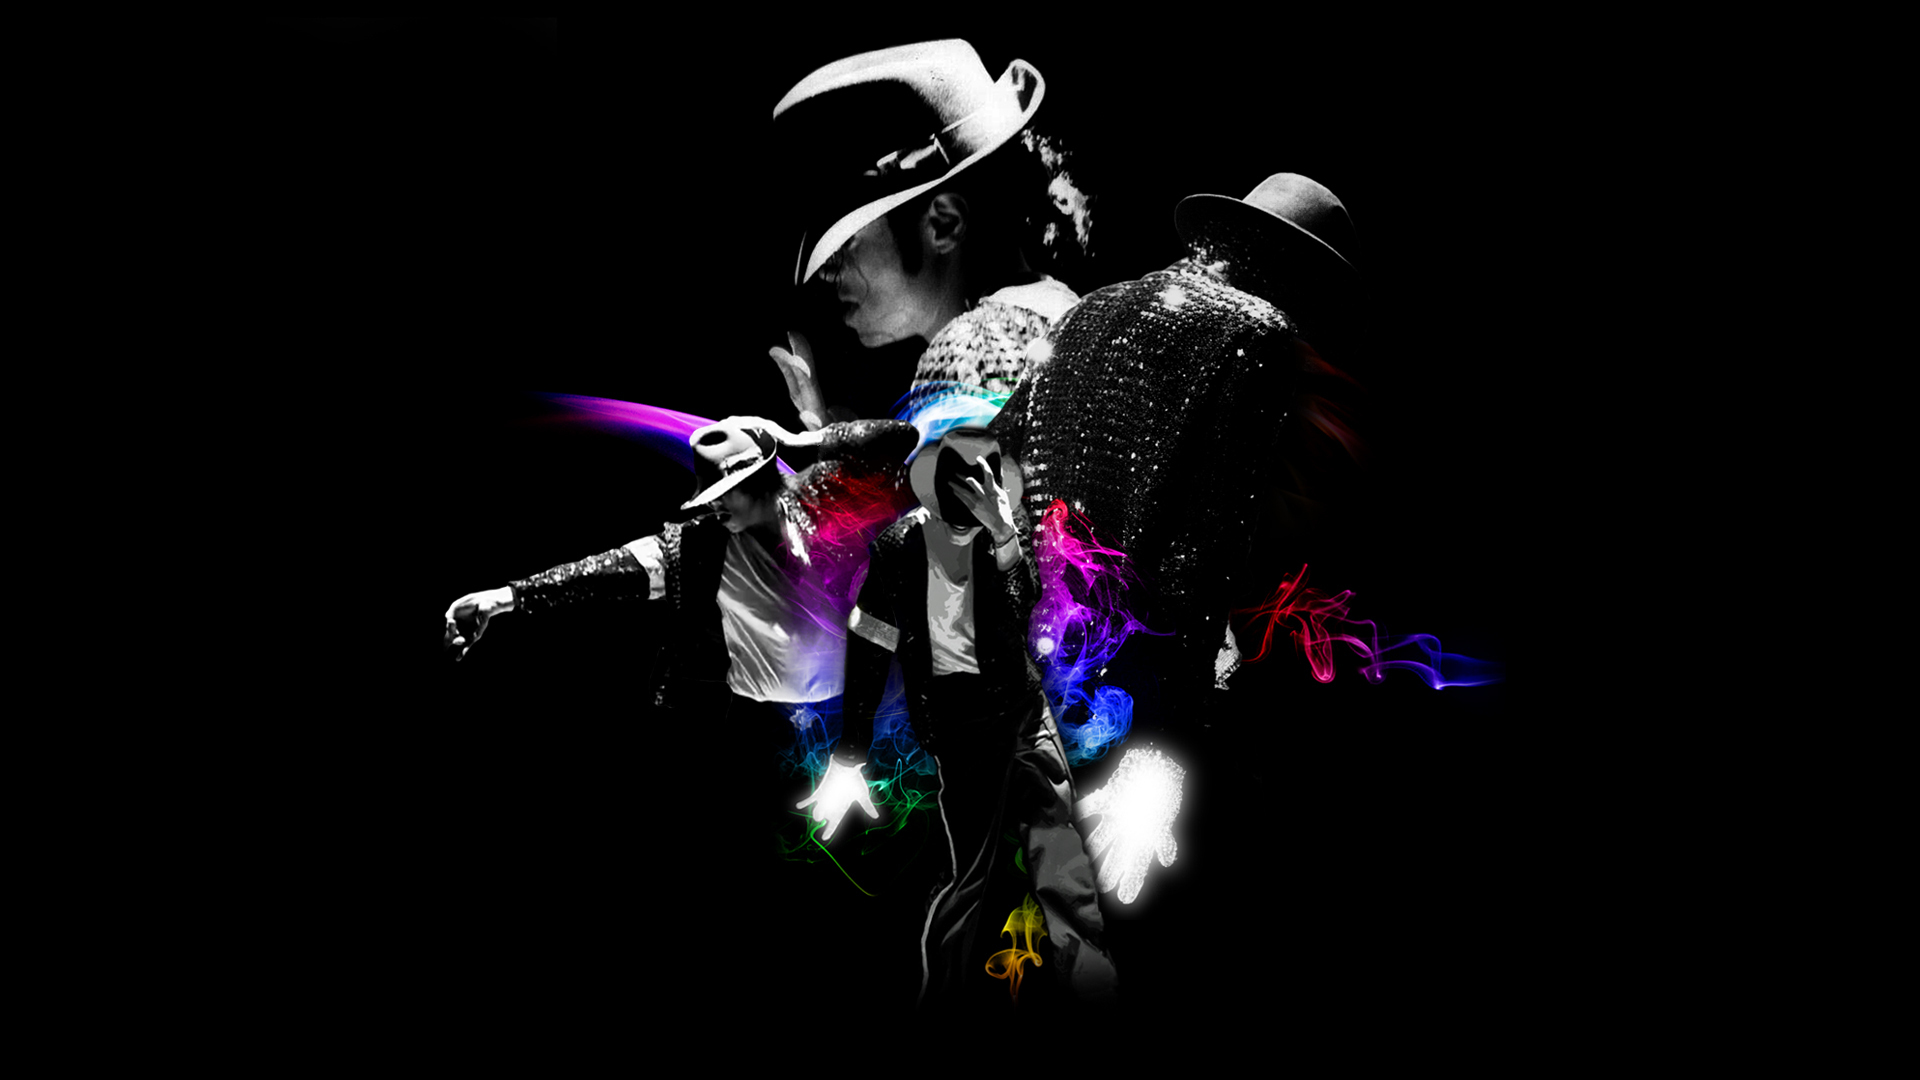 michael jackson images wallpapers - photo #22